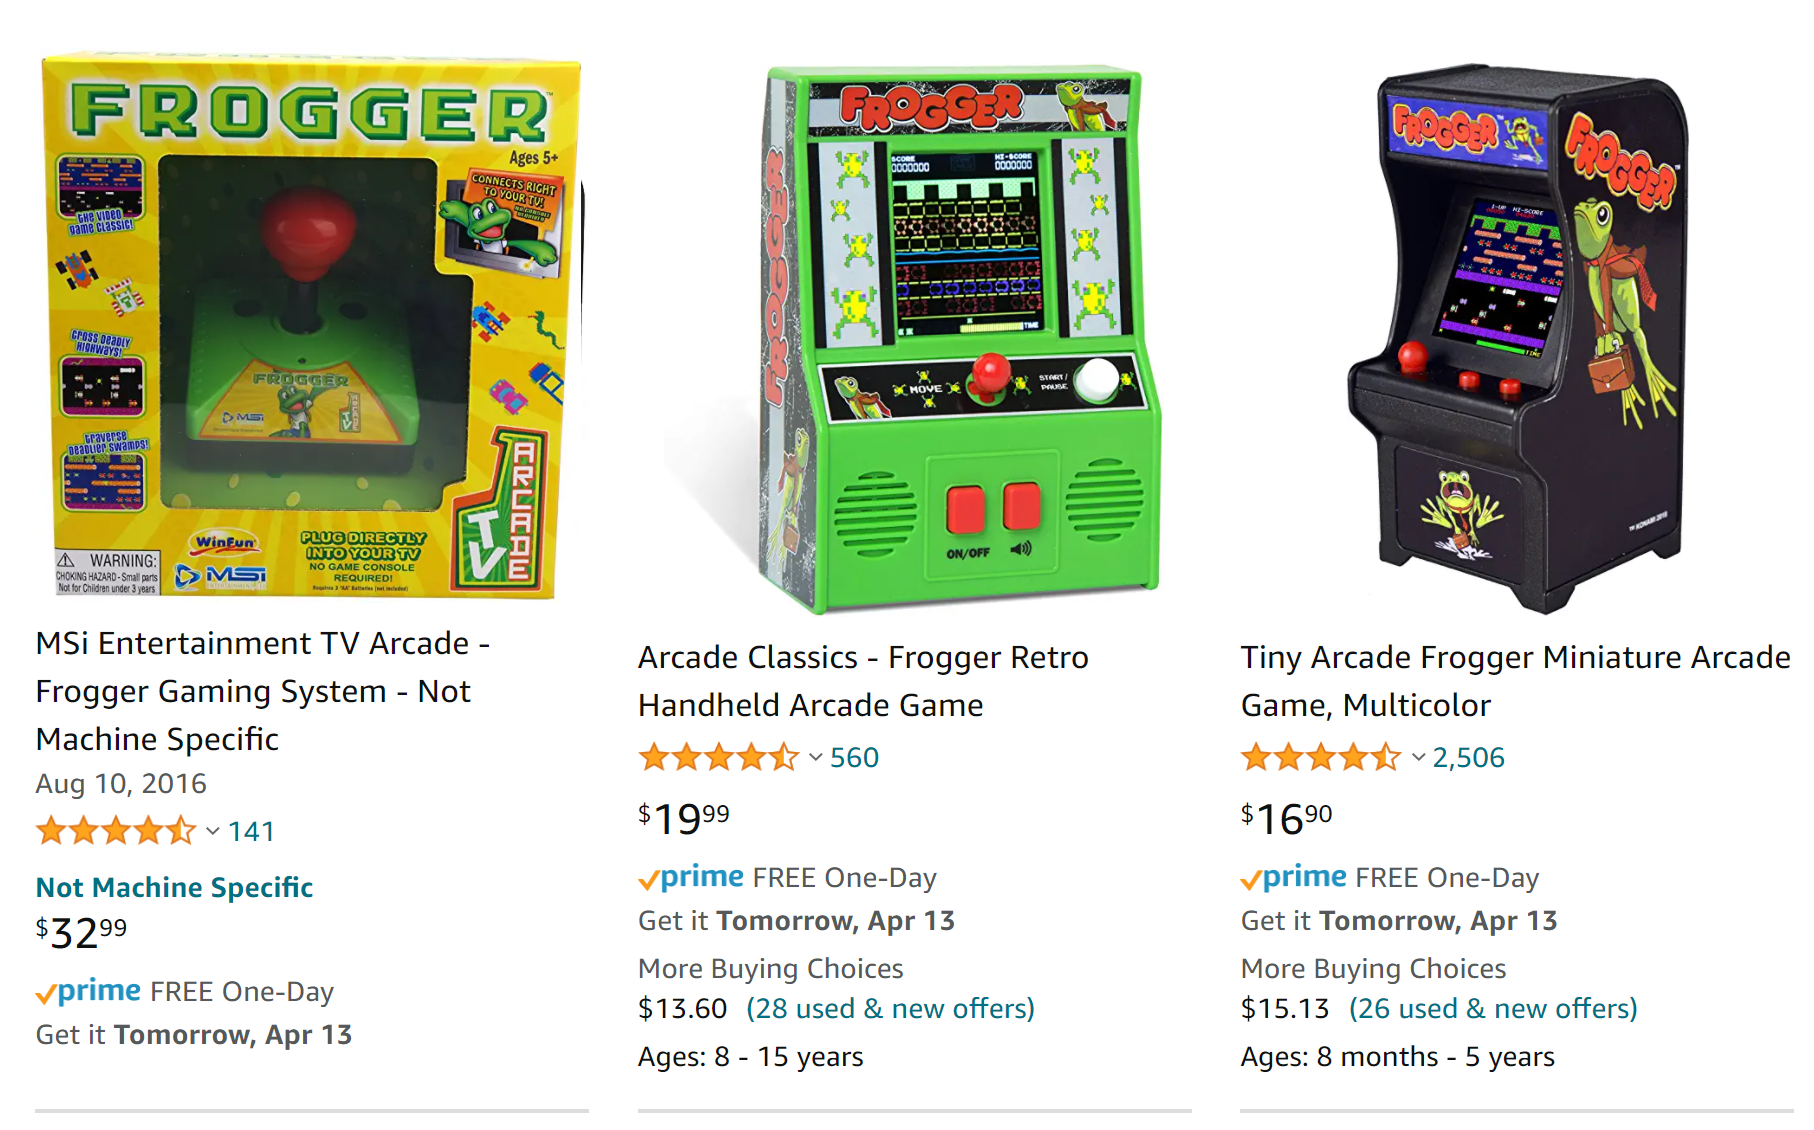 frogger games for sale on amazon.com